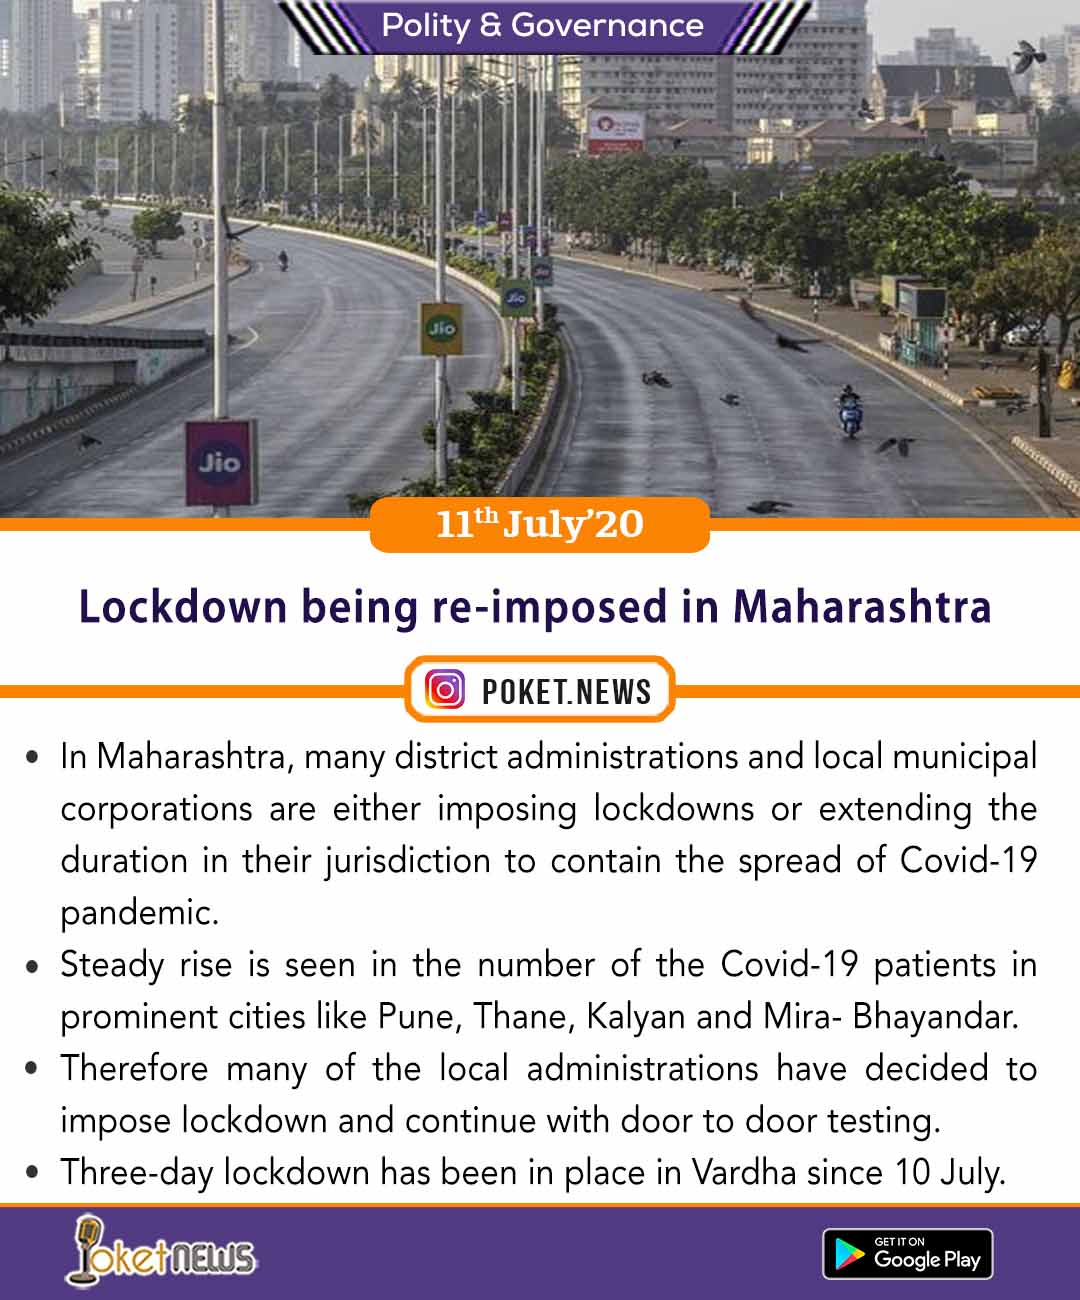 Lockdown being re-imposed in Maharashtra